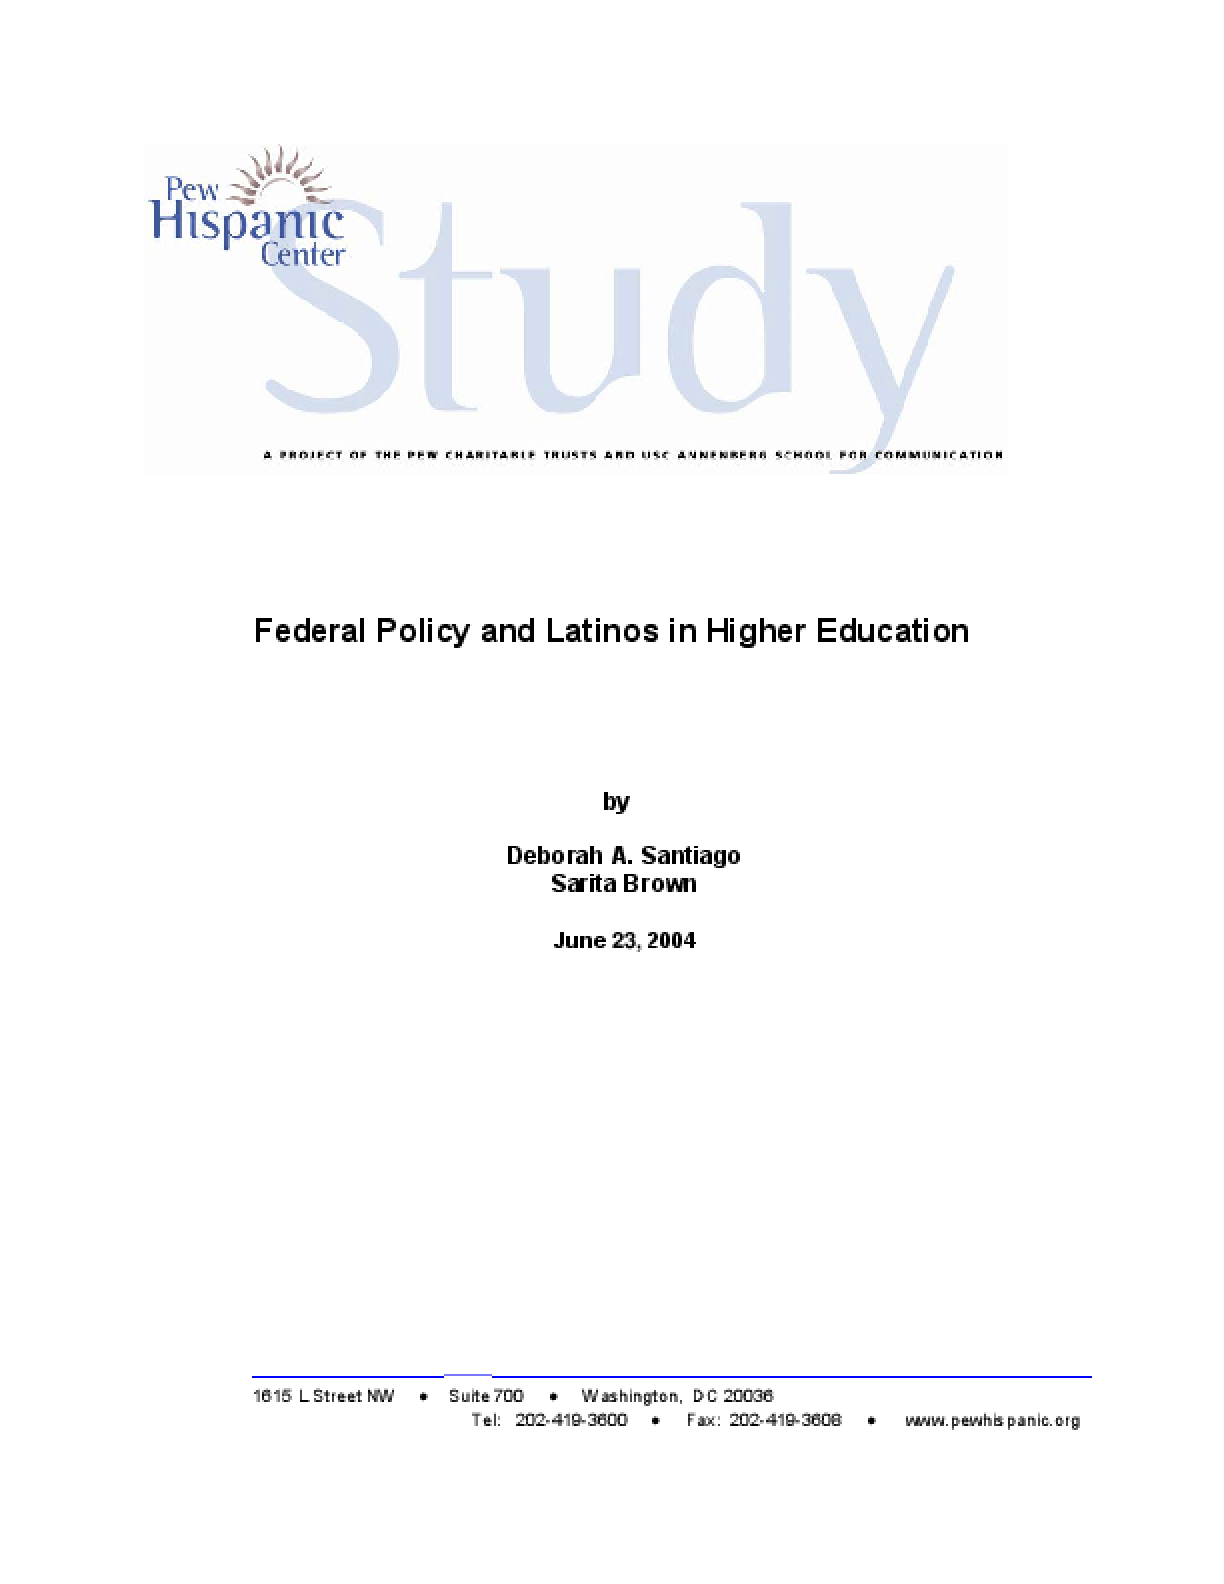 Federal Policy and Latinos in Higher Education